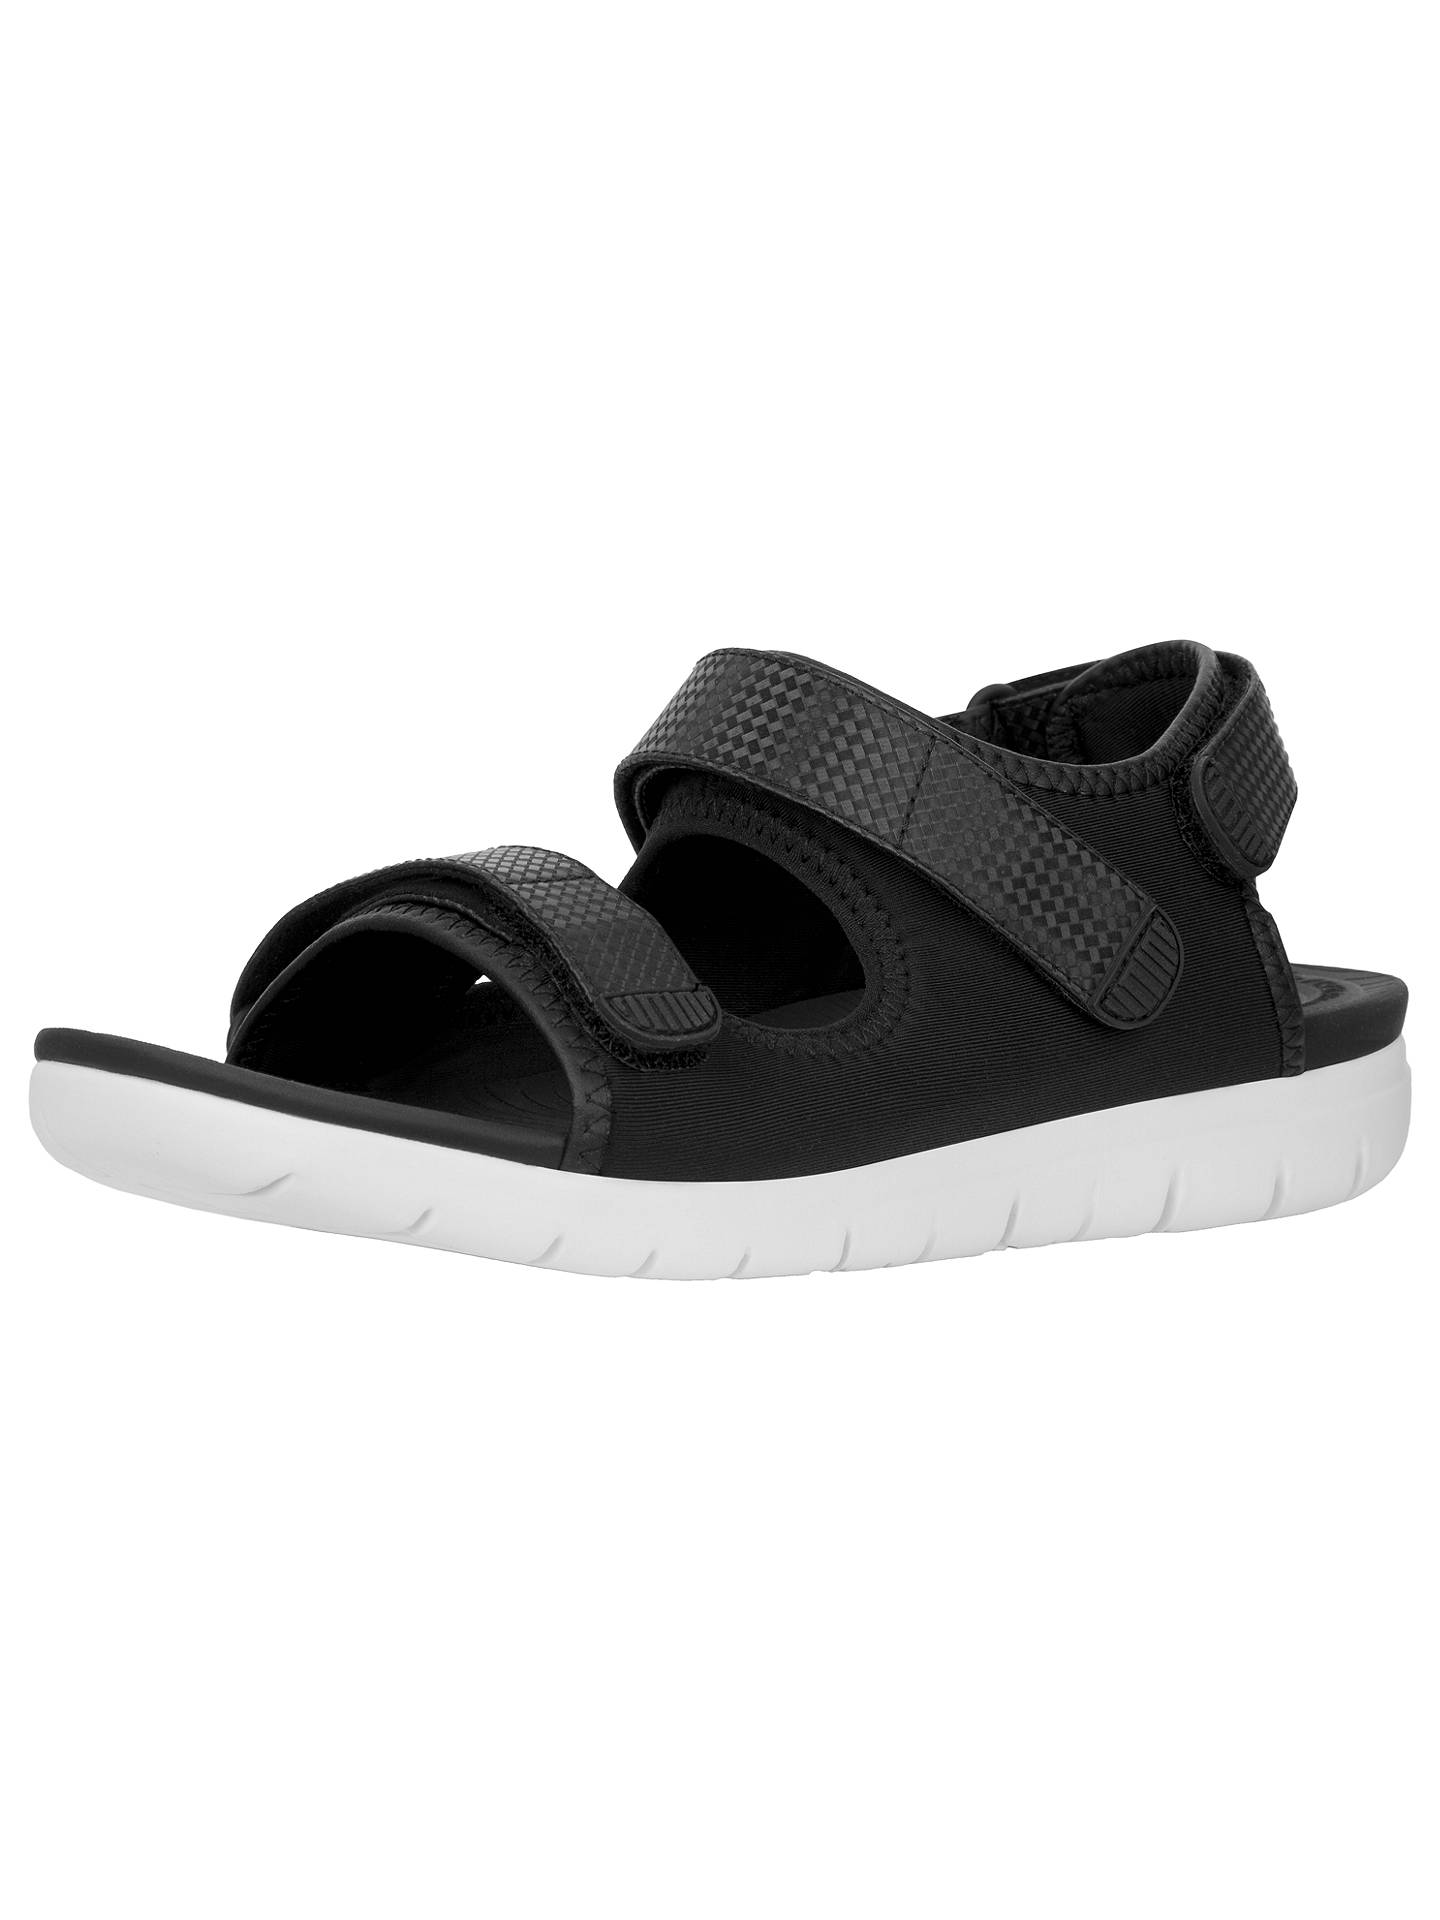 364964af1 Buy FitFlop Neoflex Double Strap Sandals